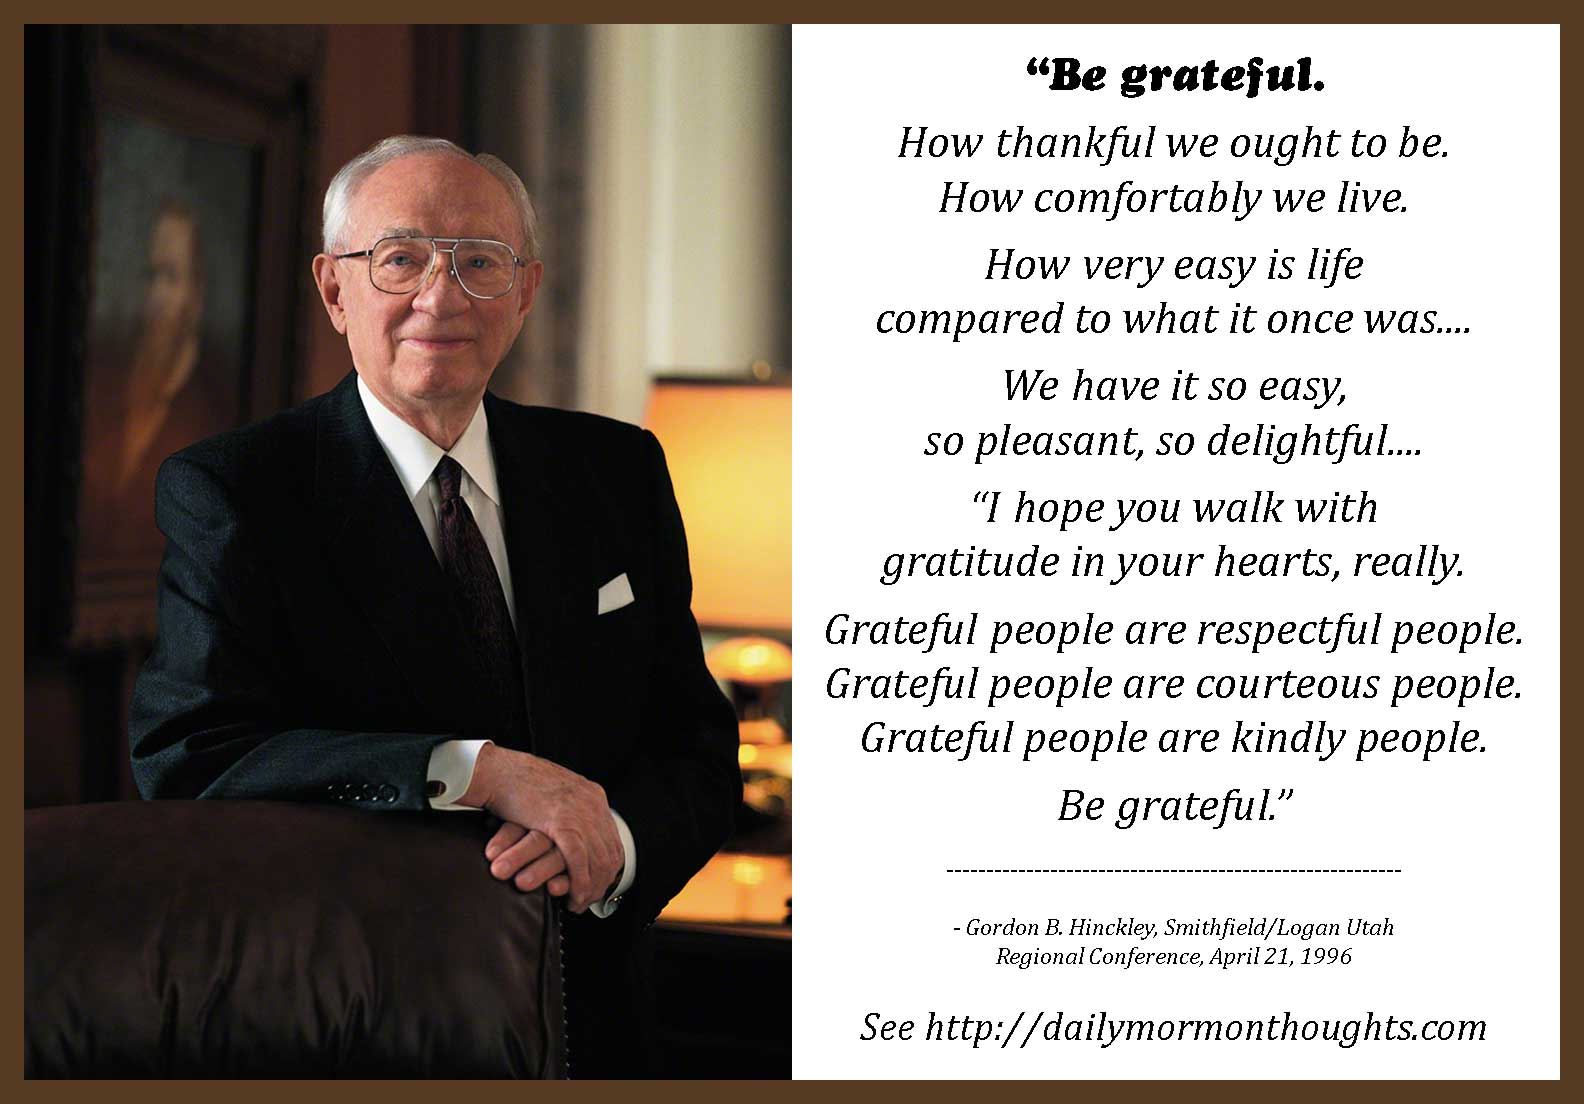 Gordon B Hinckley Quotes Daily Thought From Lds Leaders Gordon Bhinckley On Gratitude